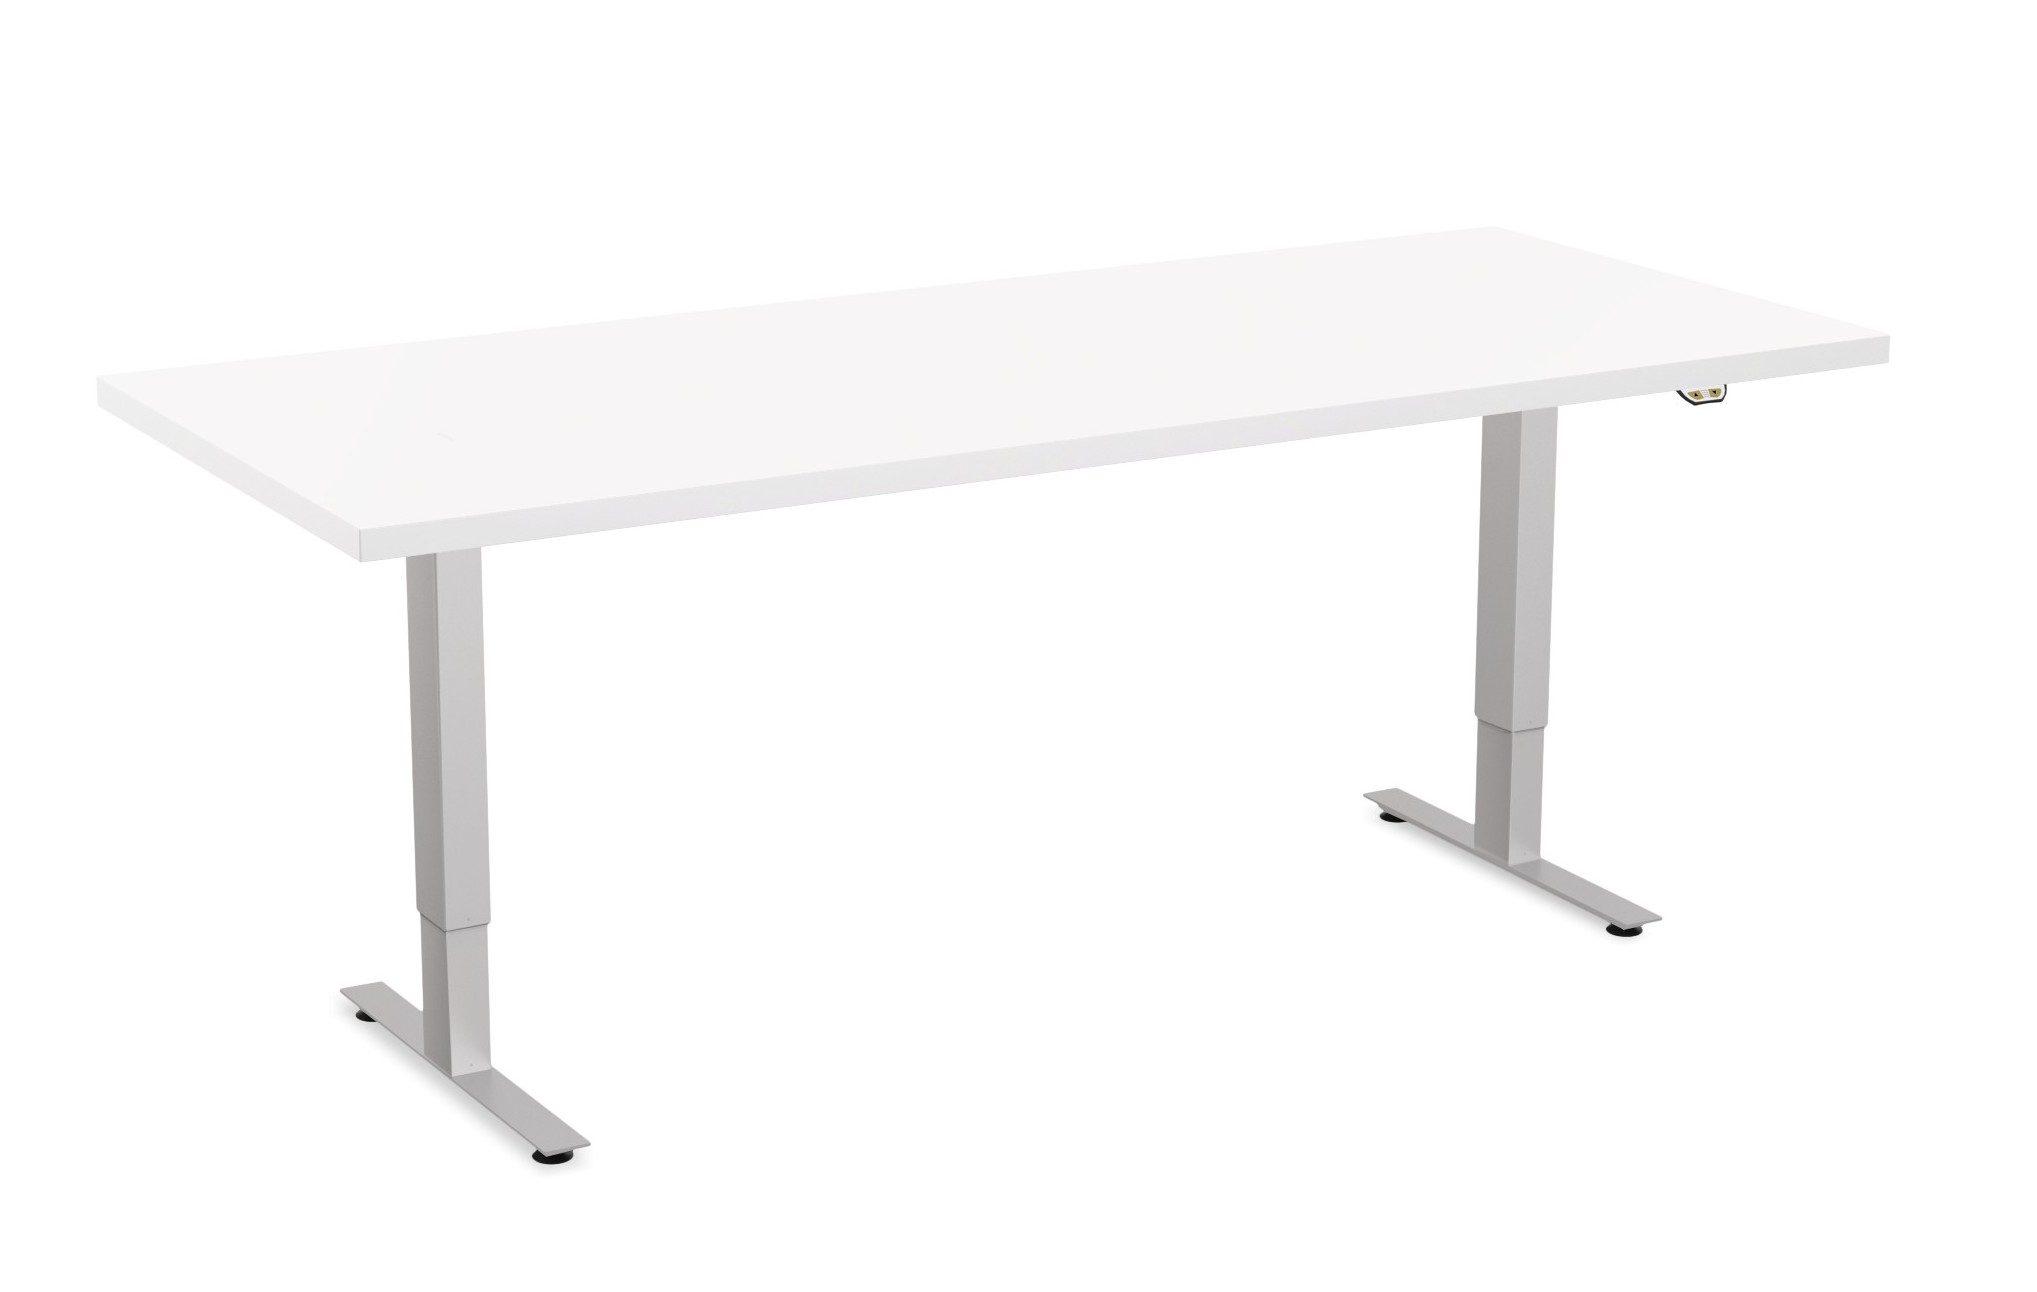 special-t patriot table in white